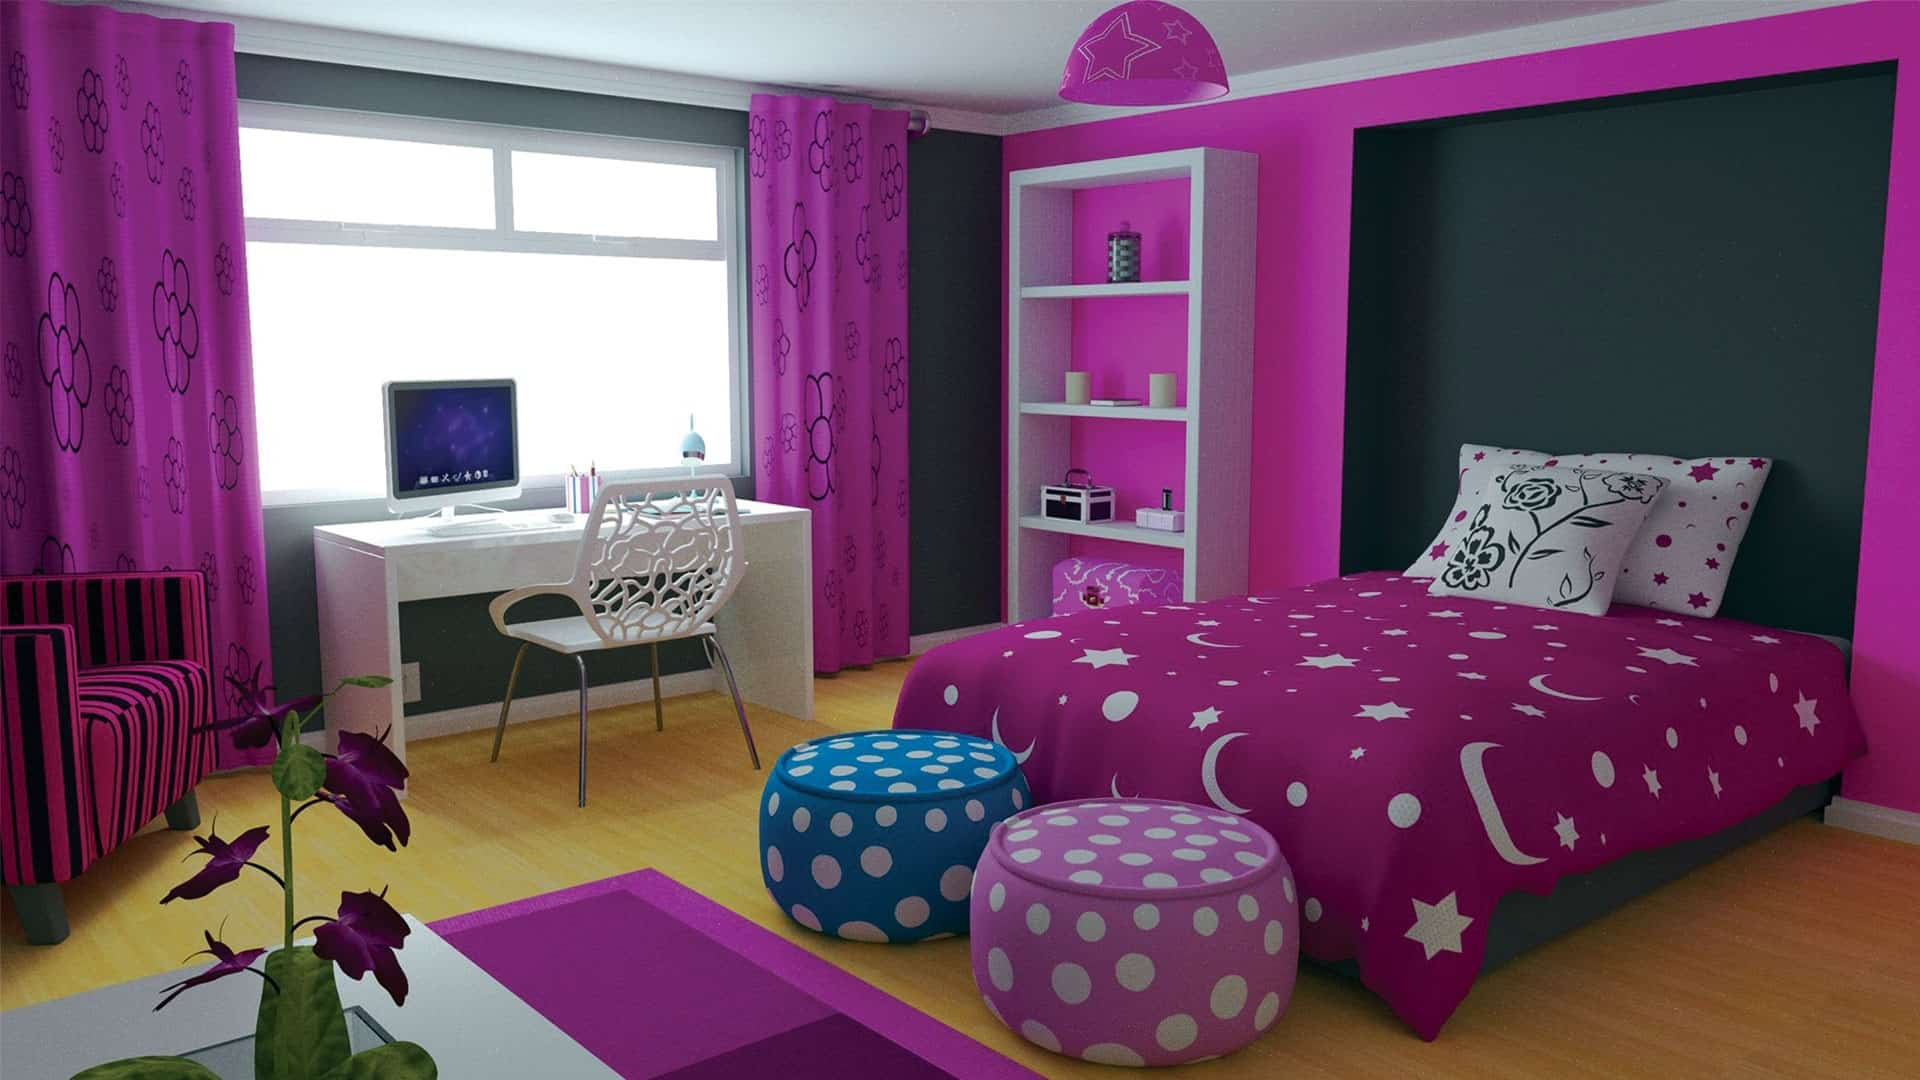 Home decor trends 2017 purple teen room Bed designs for girls